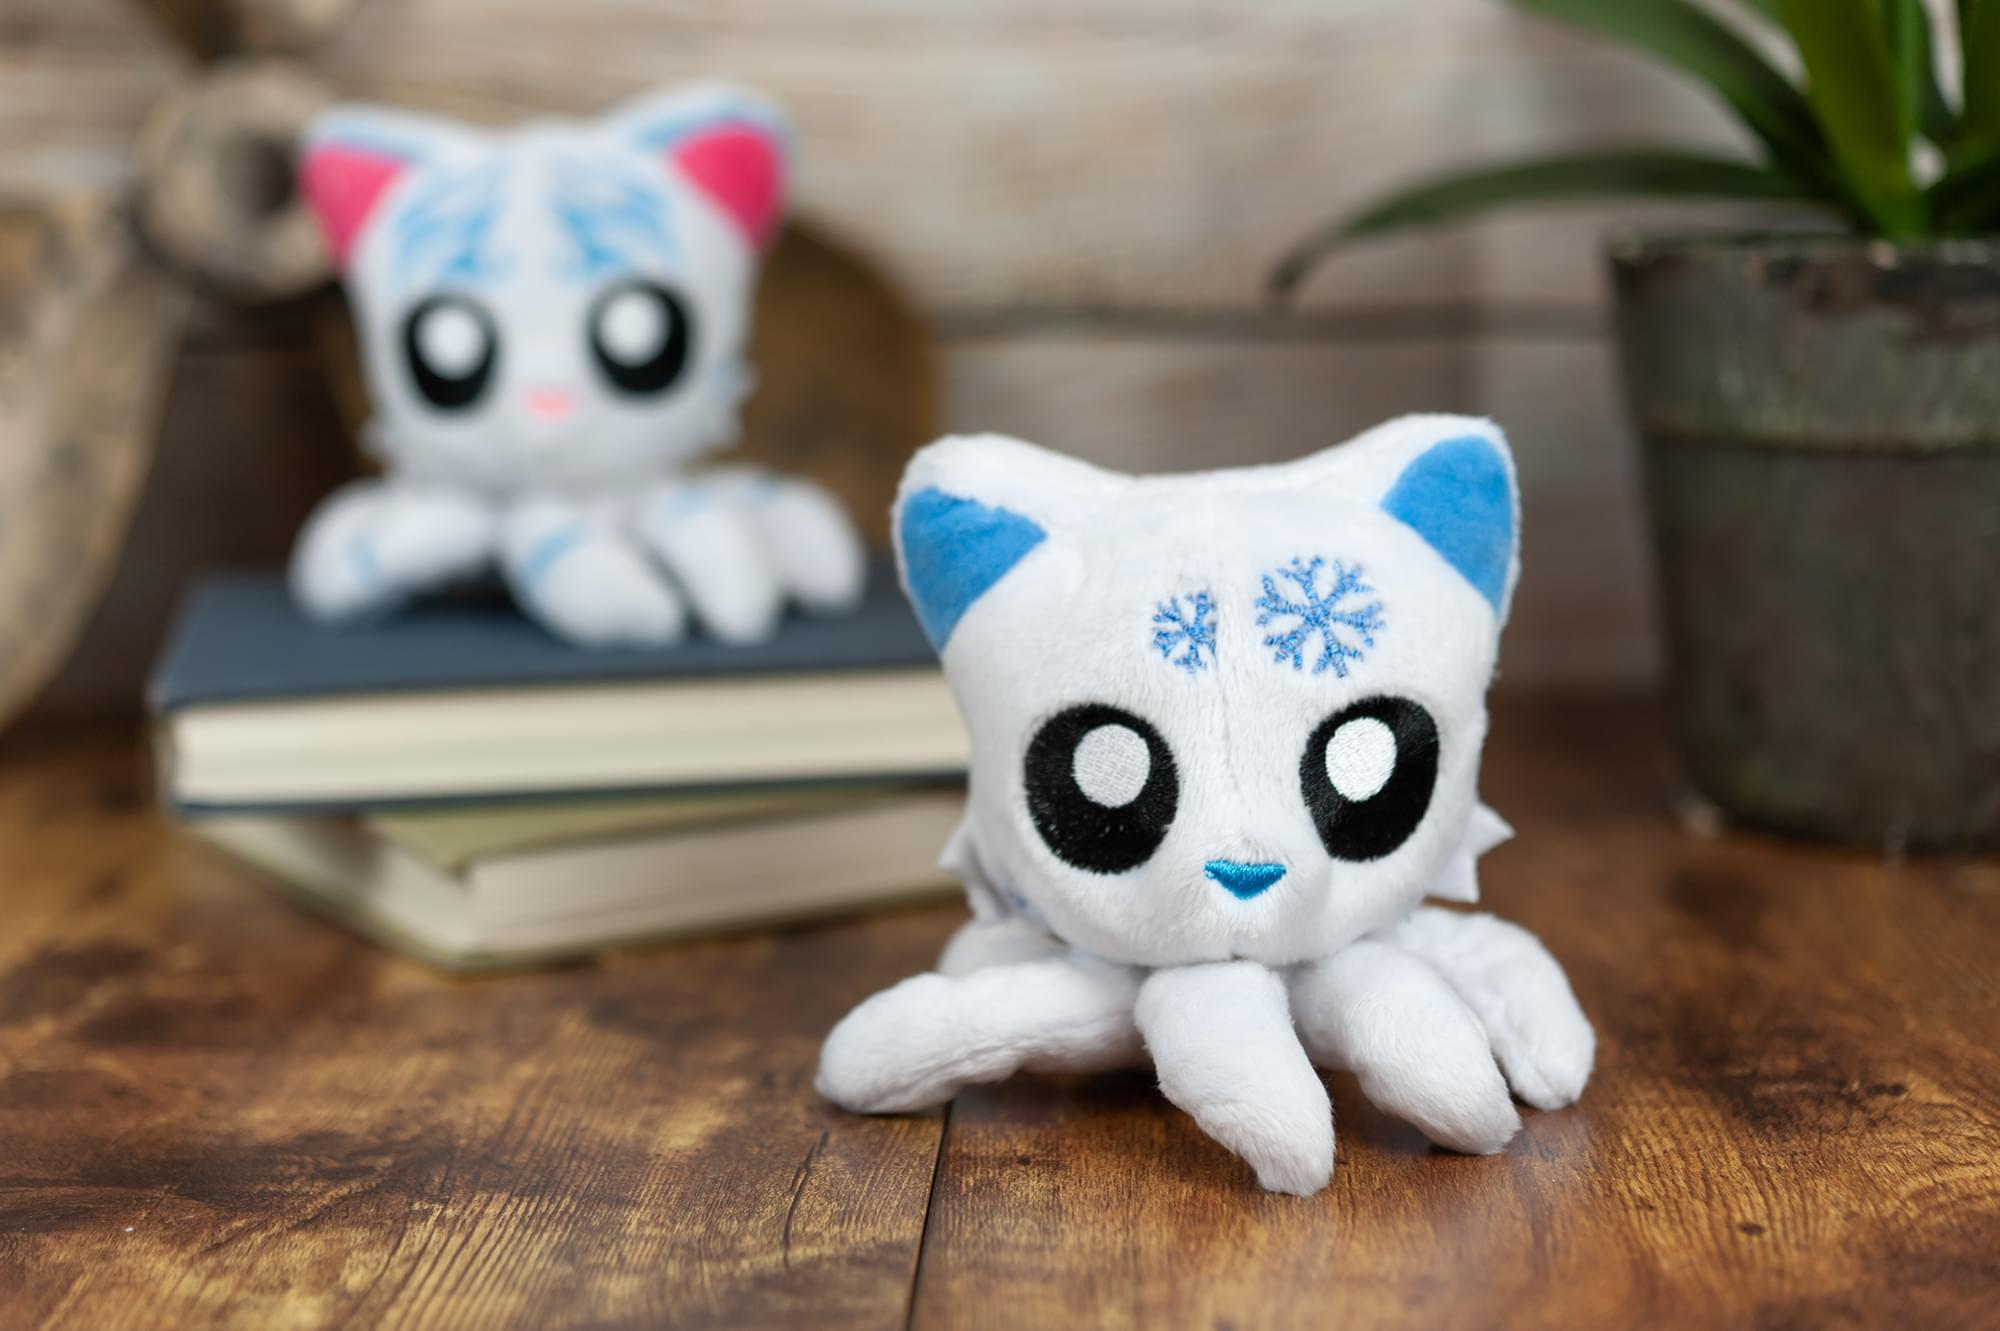 Tentacle Kitty Little Ones 4 Inch Plush Animal | Snowflake